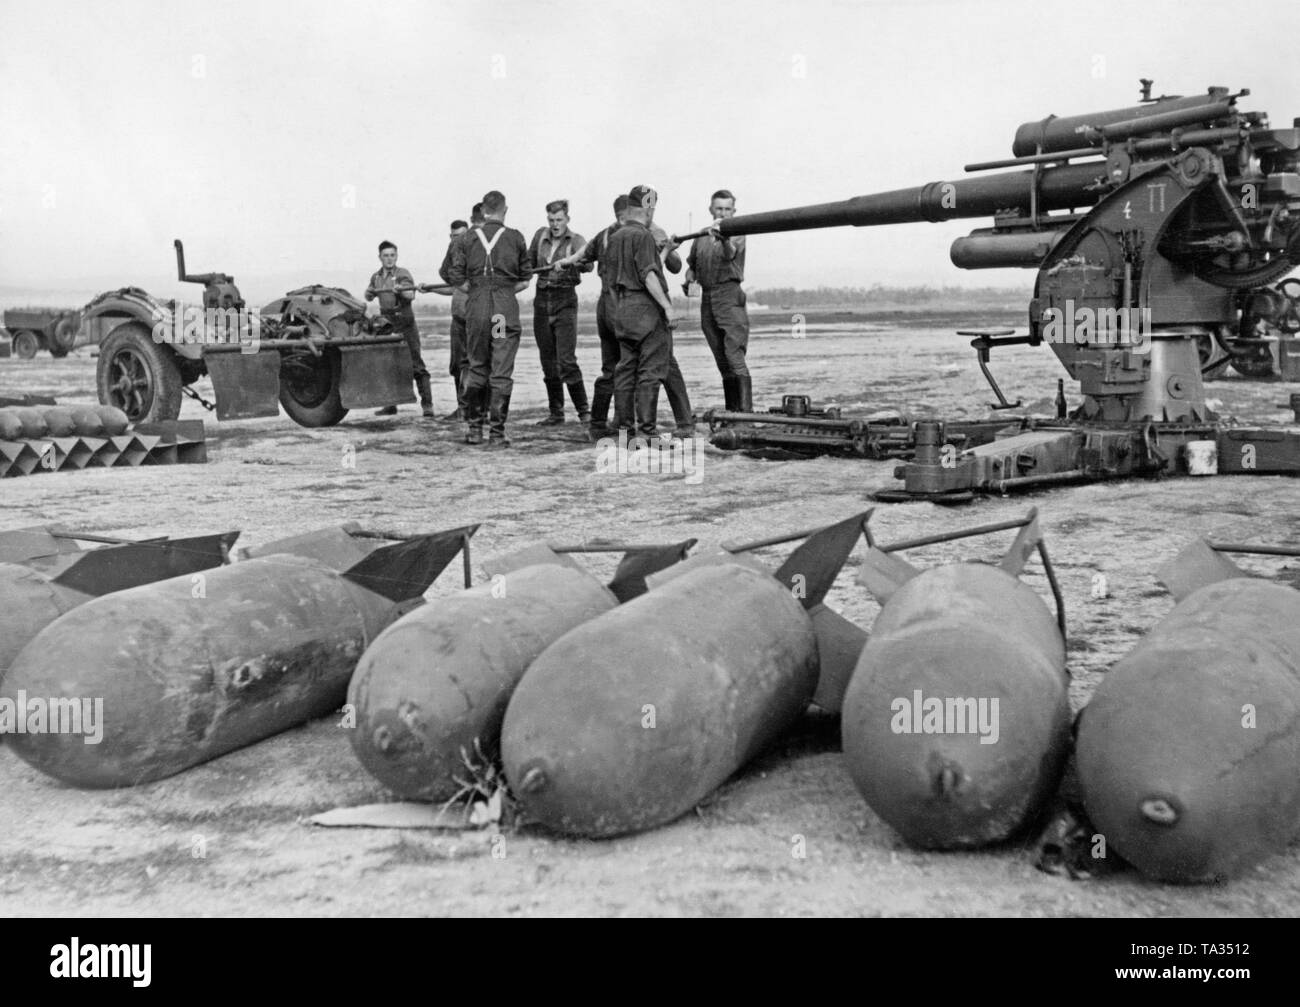 Photo of a group of soldiers of the Flak corps 88 of the Condor Legion cleaning a 8.8cm Flak 18/36/37 on an airfield in Spain, 1939. The soldiers are cleaning the cannon barrel. In front of it, there are 250kg aerial bombs. - Stock Image